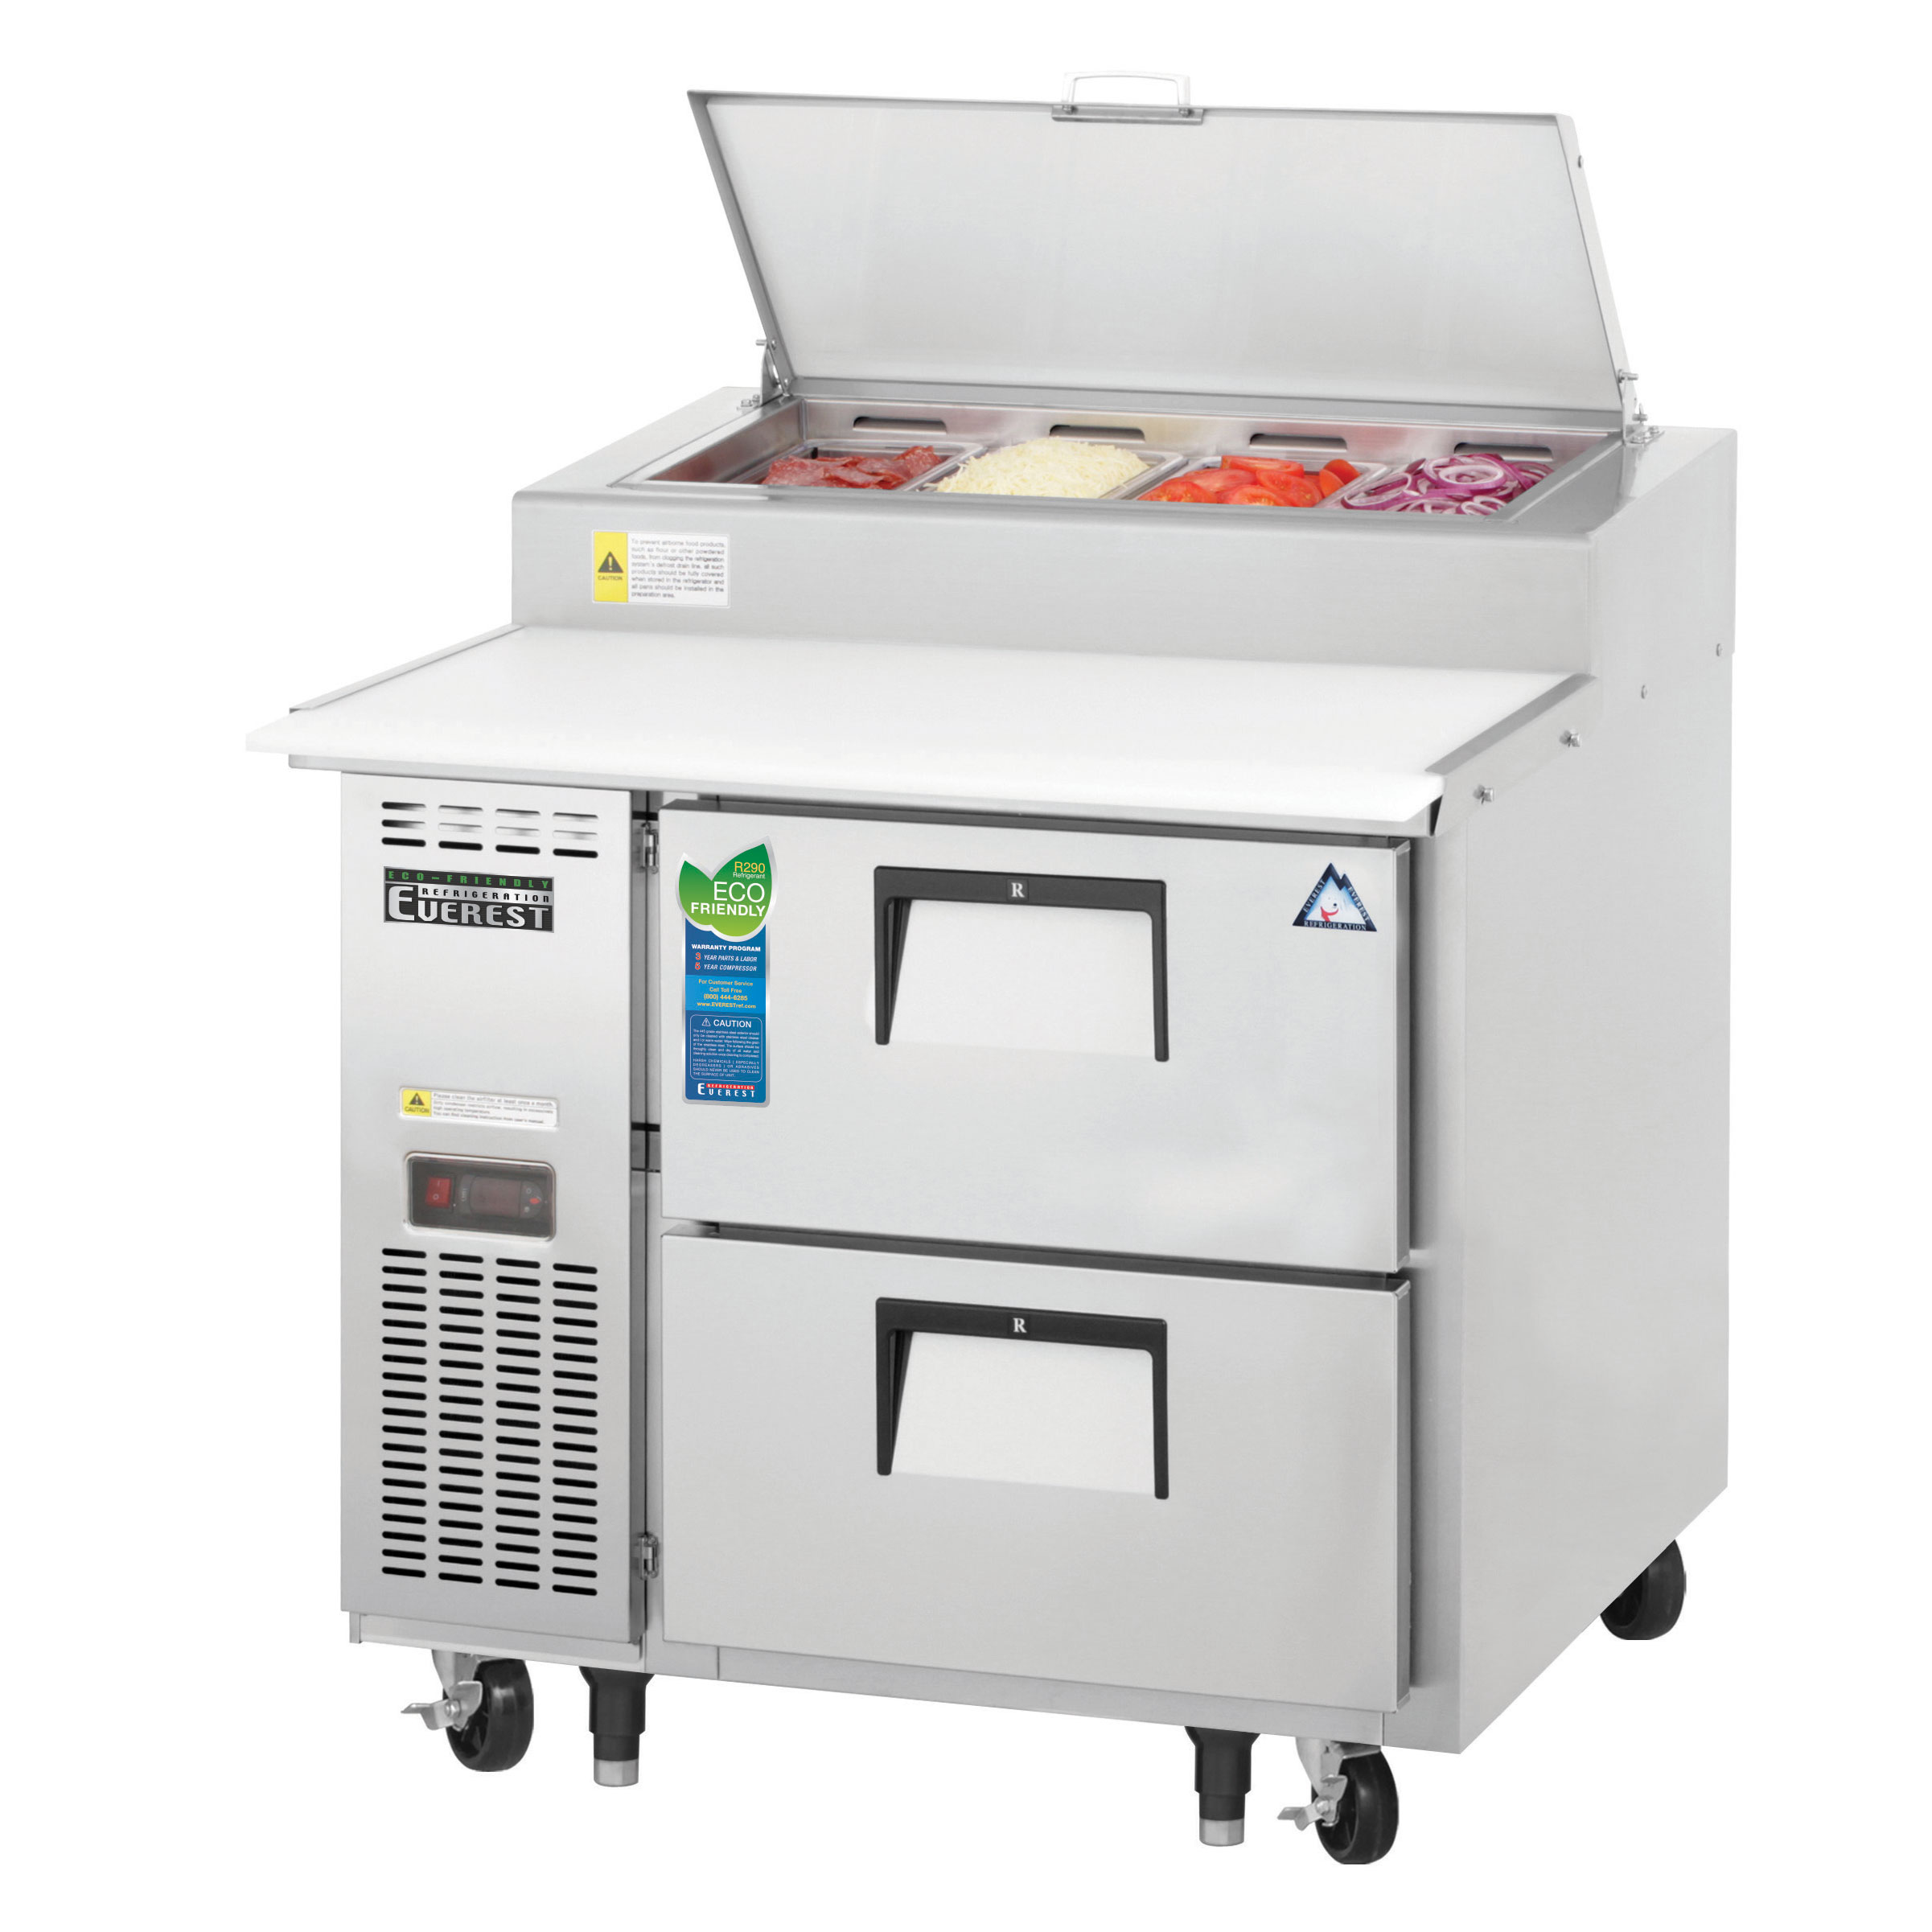 Everest Refrigeration EPPR1-D2 refrigerated counter, pizza prep table